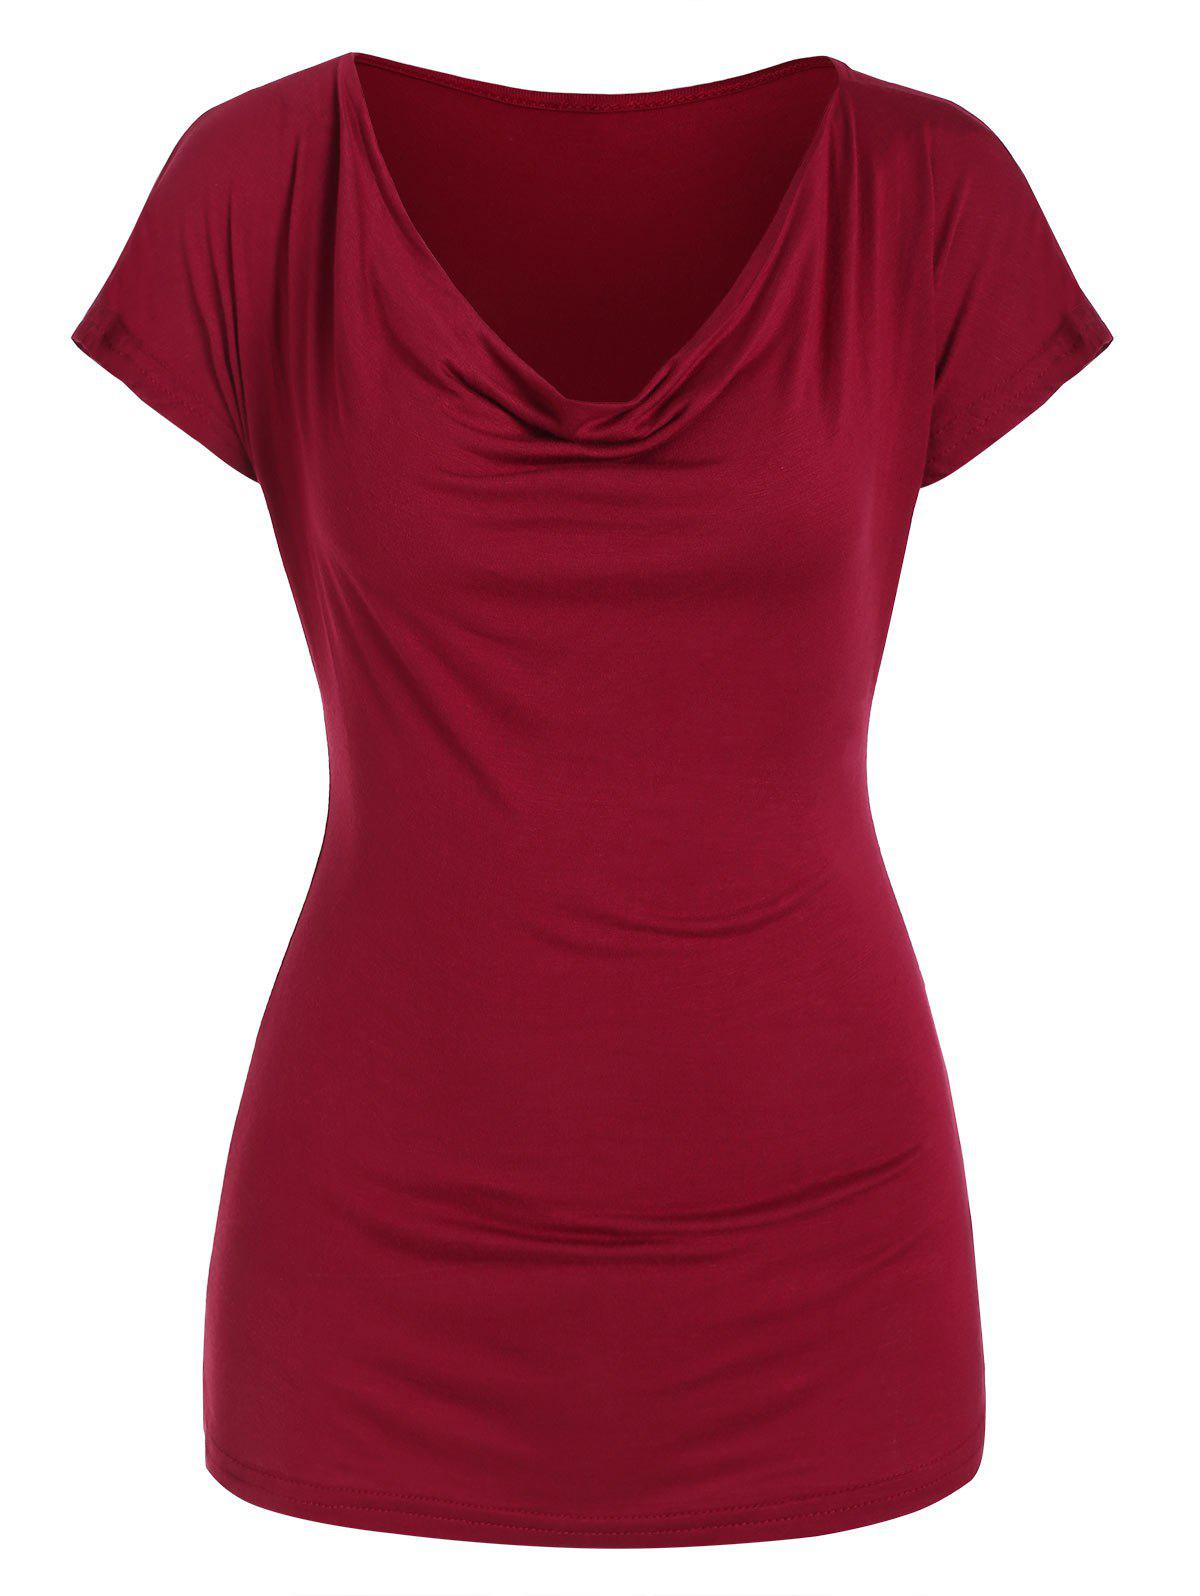 Cowl Front Short Sleeves Solid Tee, Red wine